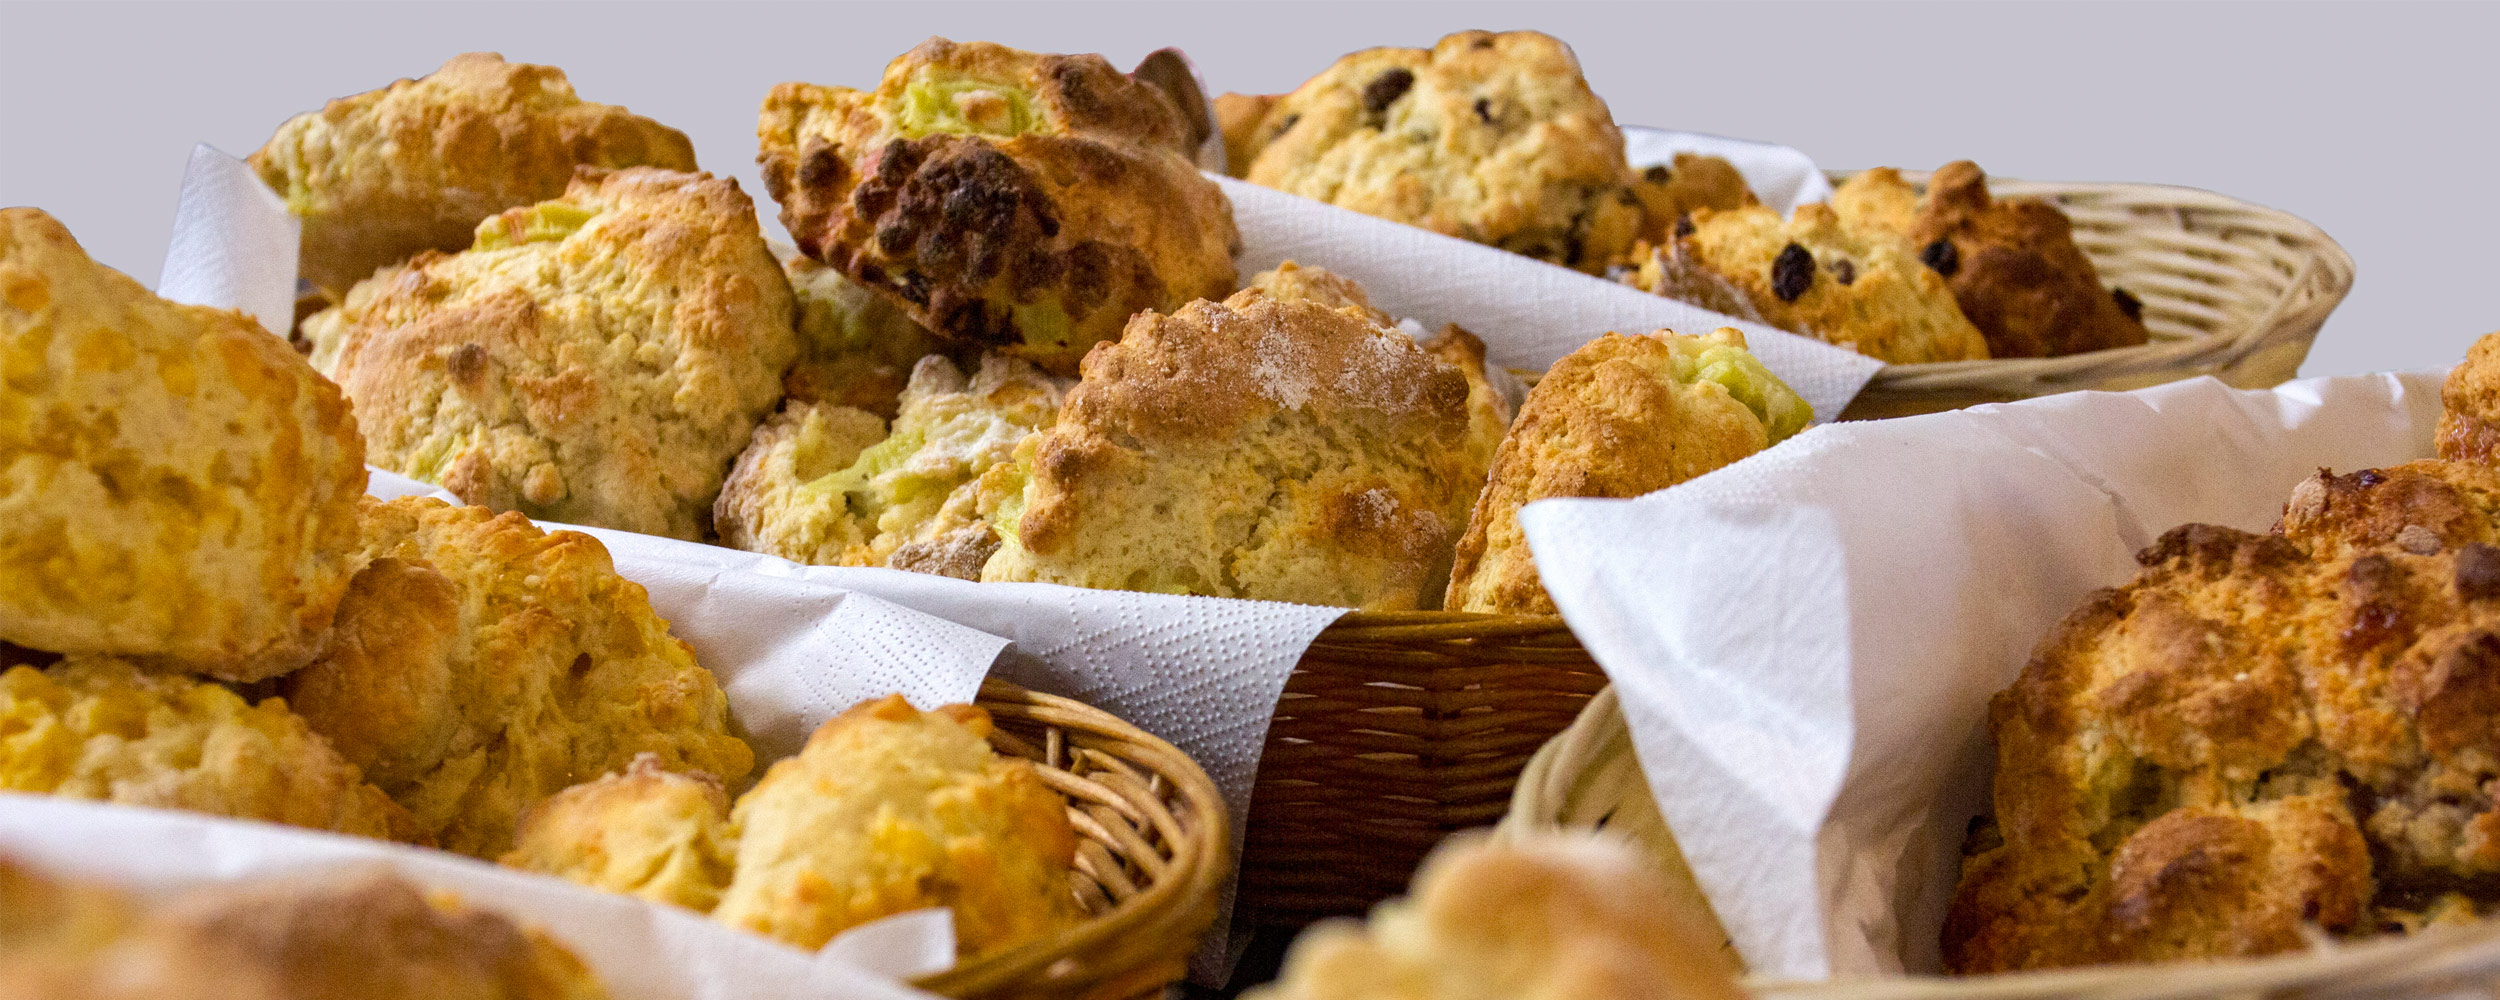 Scones in baskets